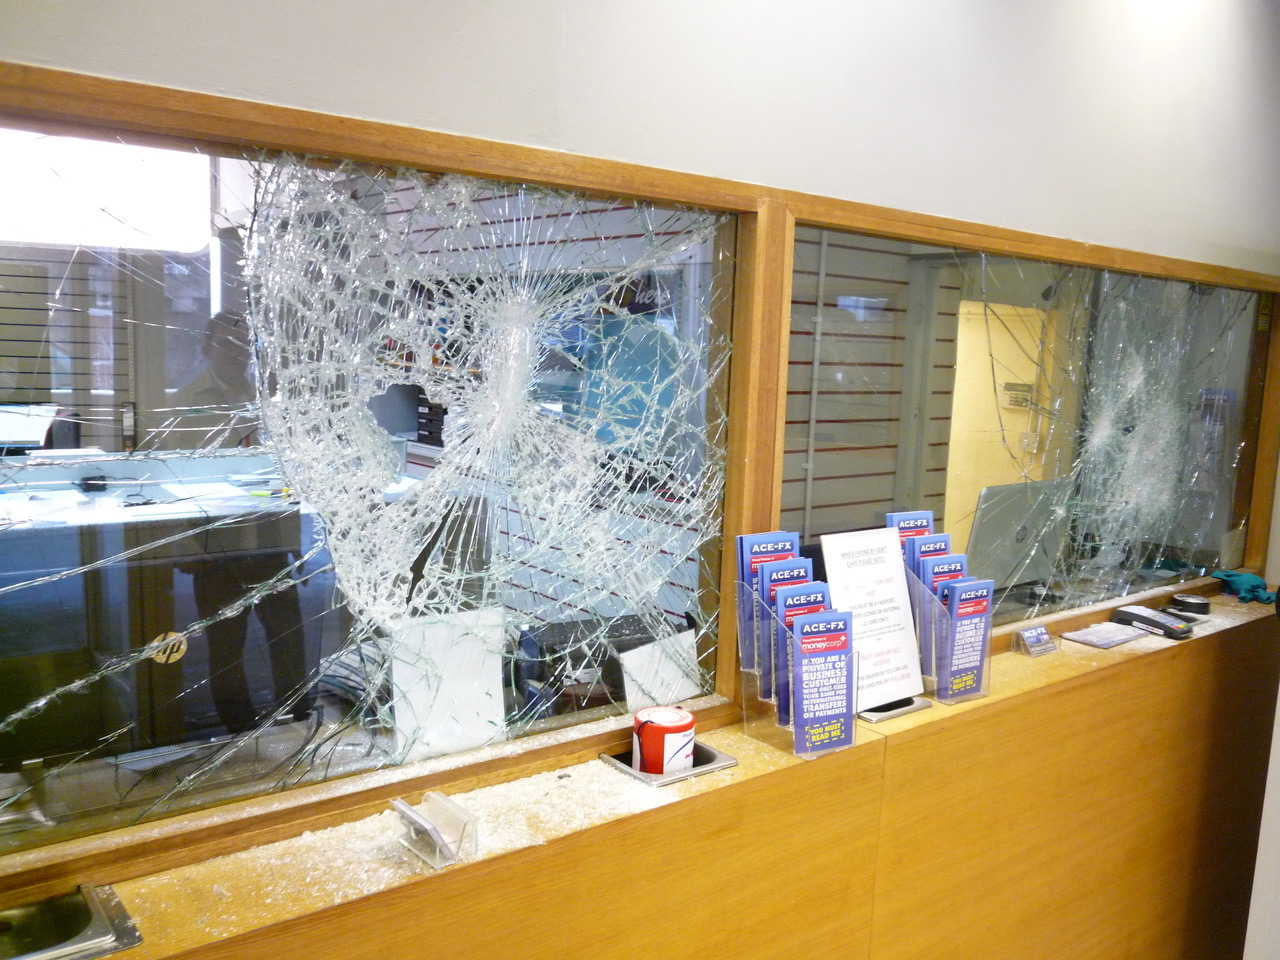 Bureau de Change London Attacked Glass